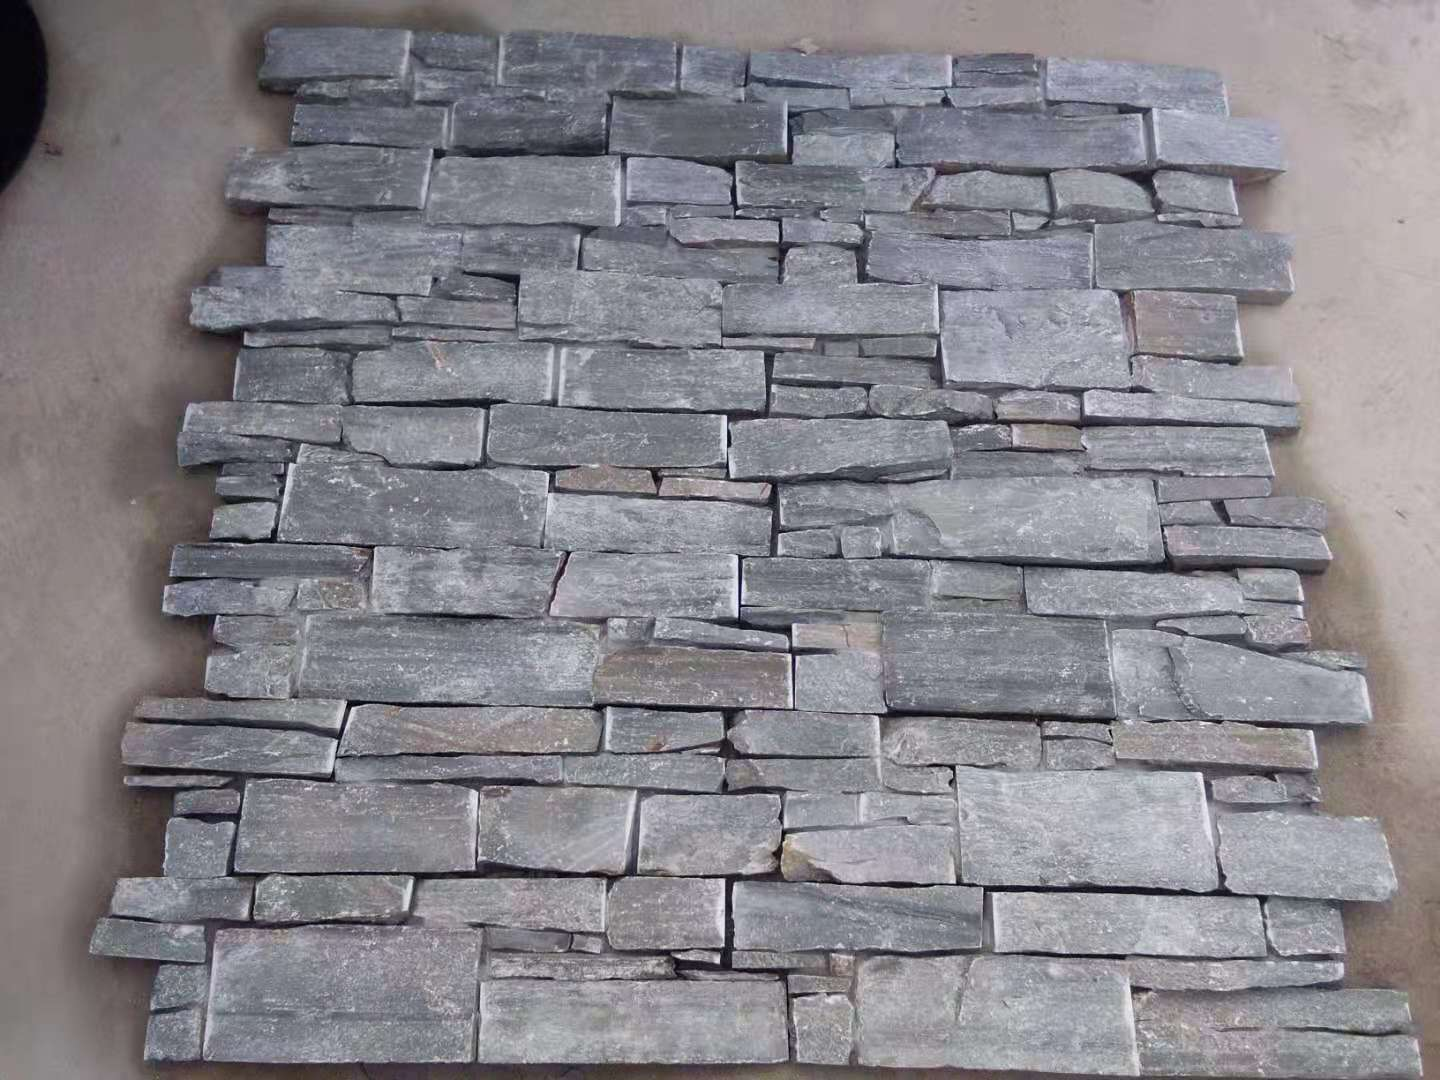 lava stone wall cladding,stone cladding fixing,stone cladding in bangalore,deco stone wall cladding,stone wall cladding tiles,rough stone wall cladding,volcanic stone cladding